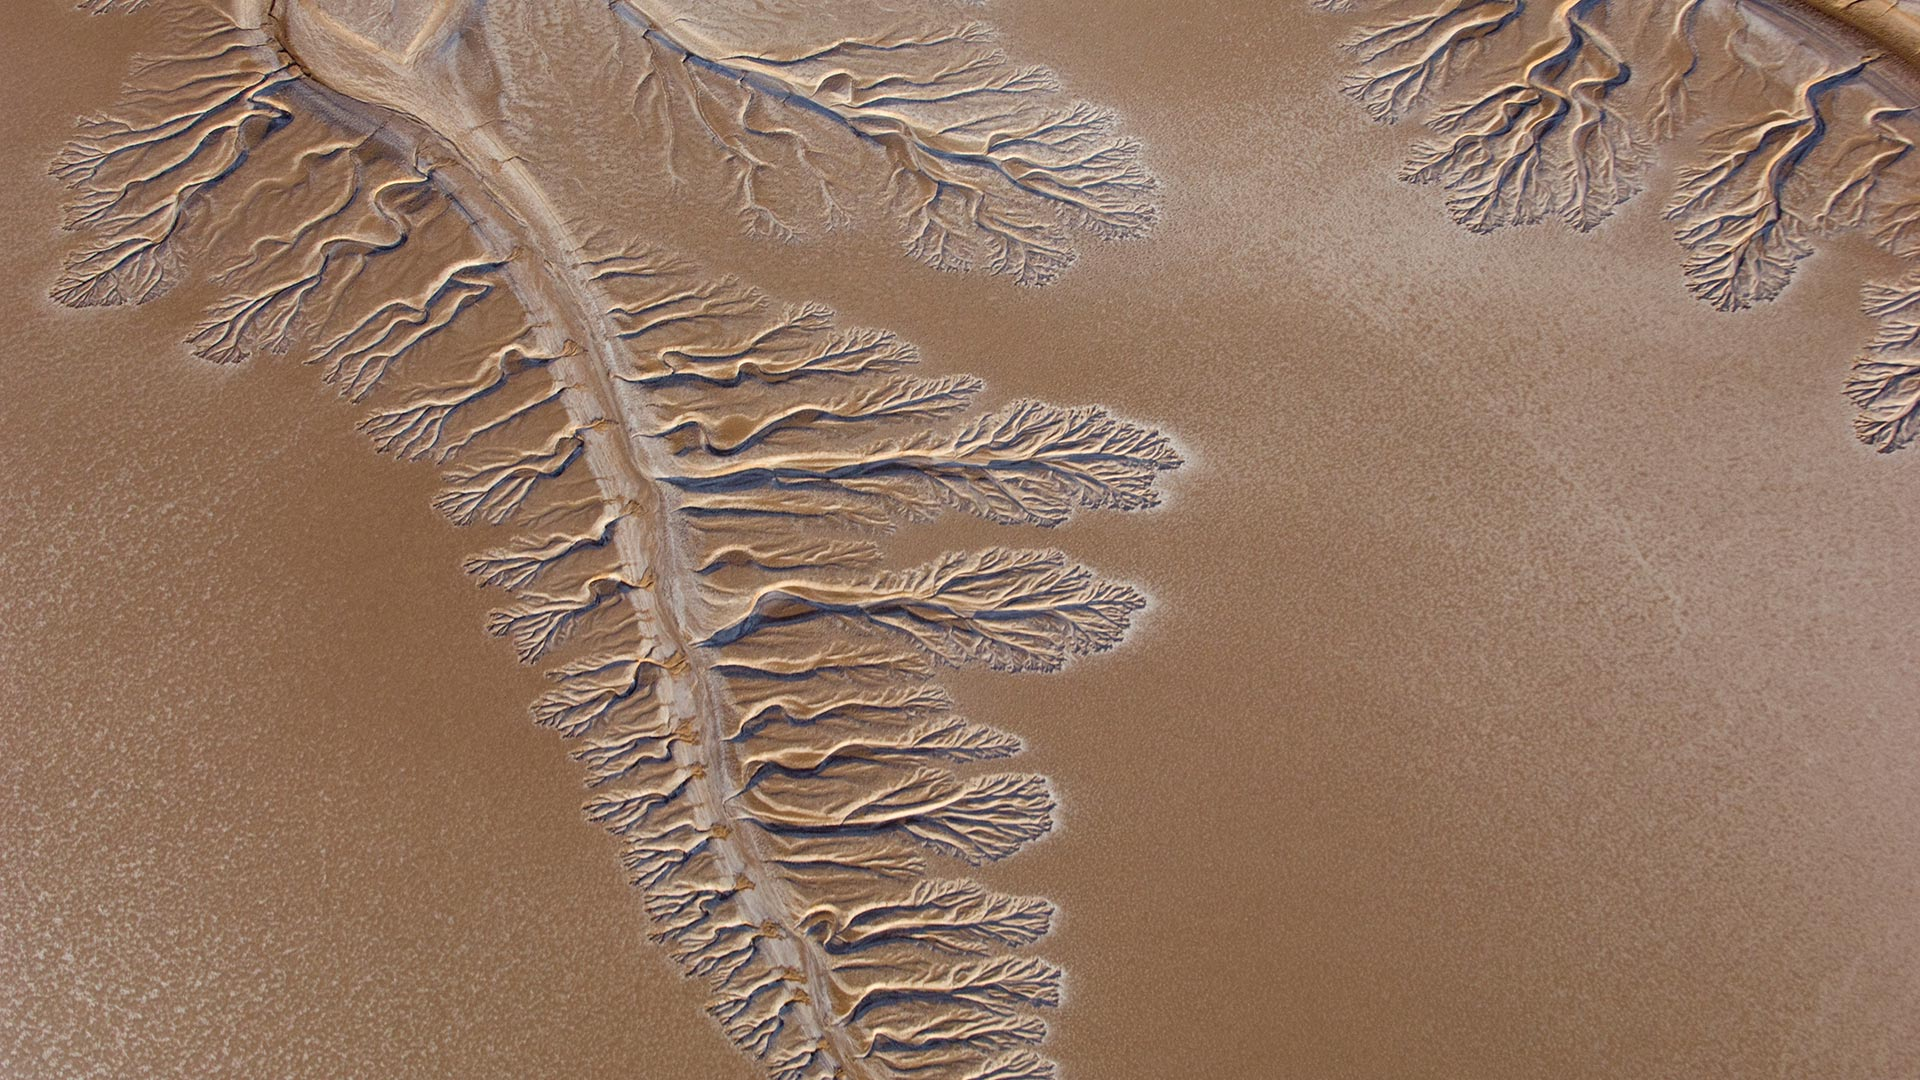 The dry Colorado River Delta in 2009.